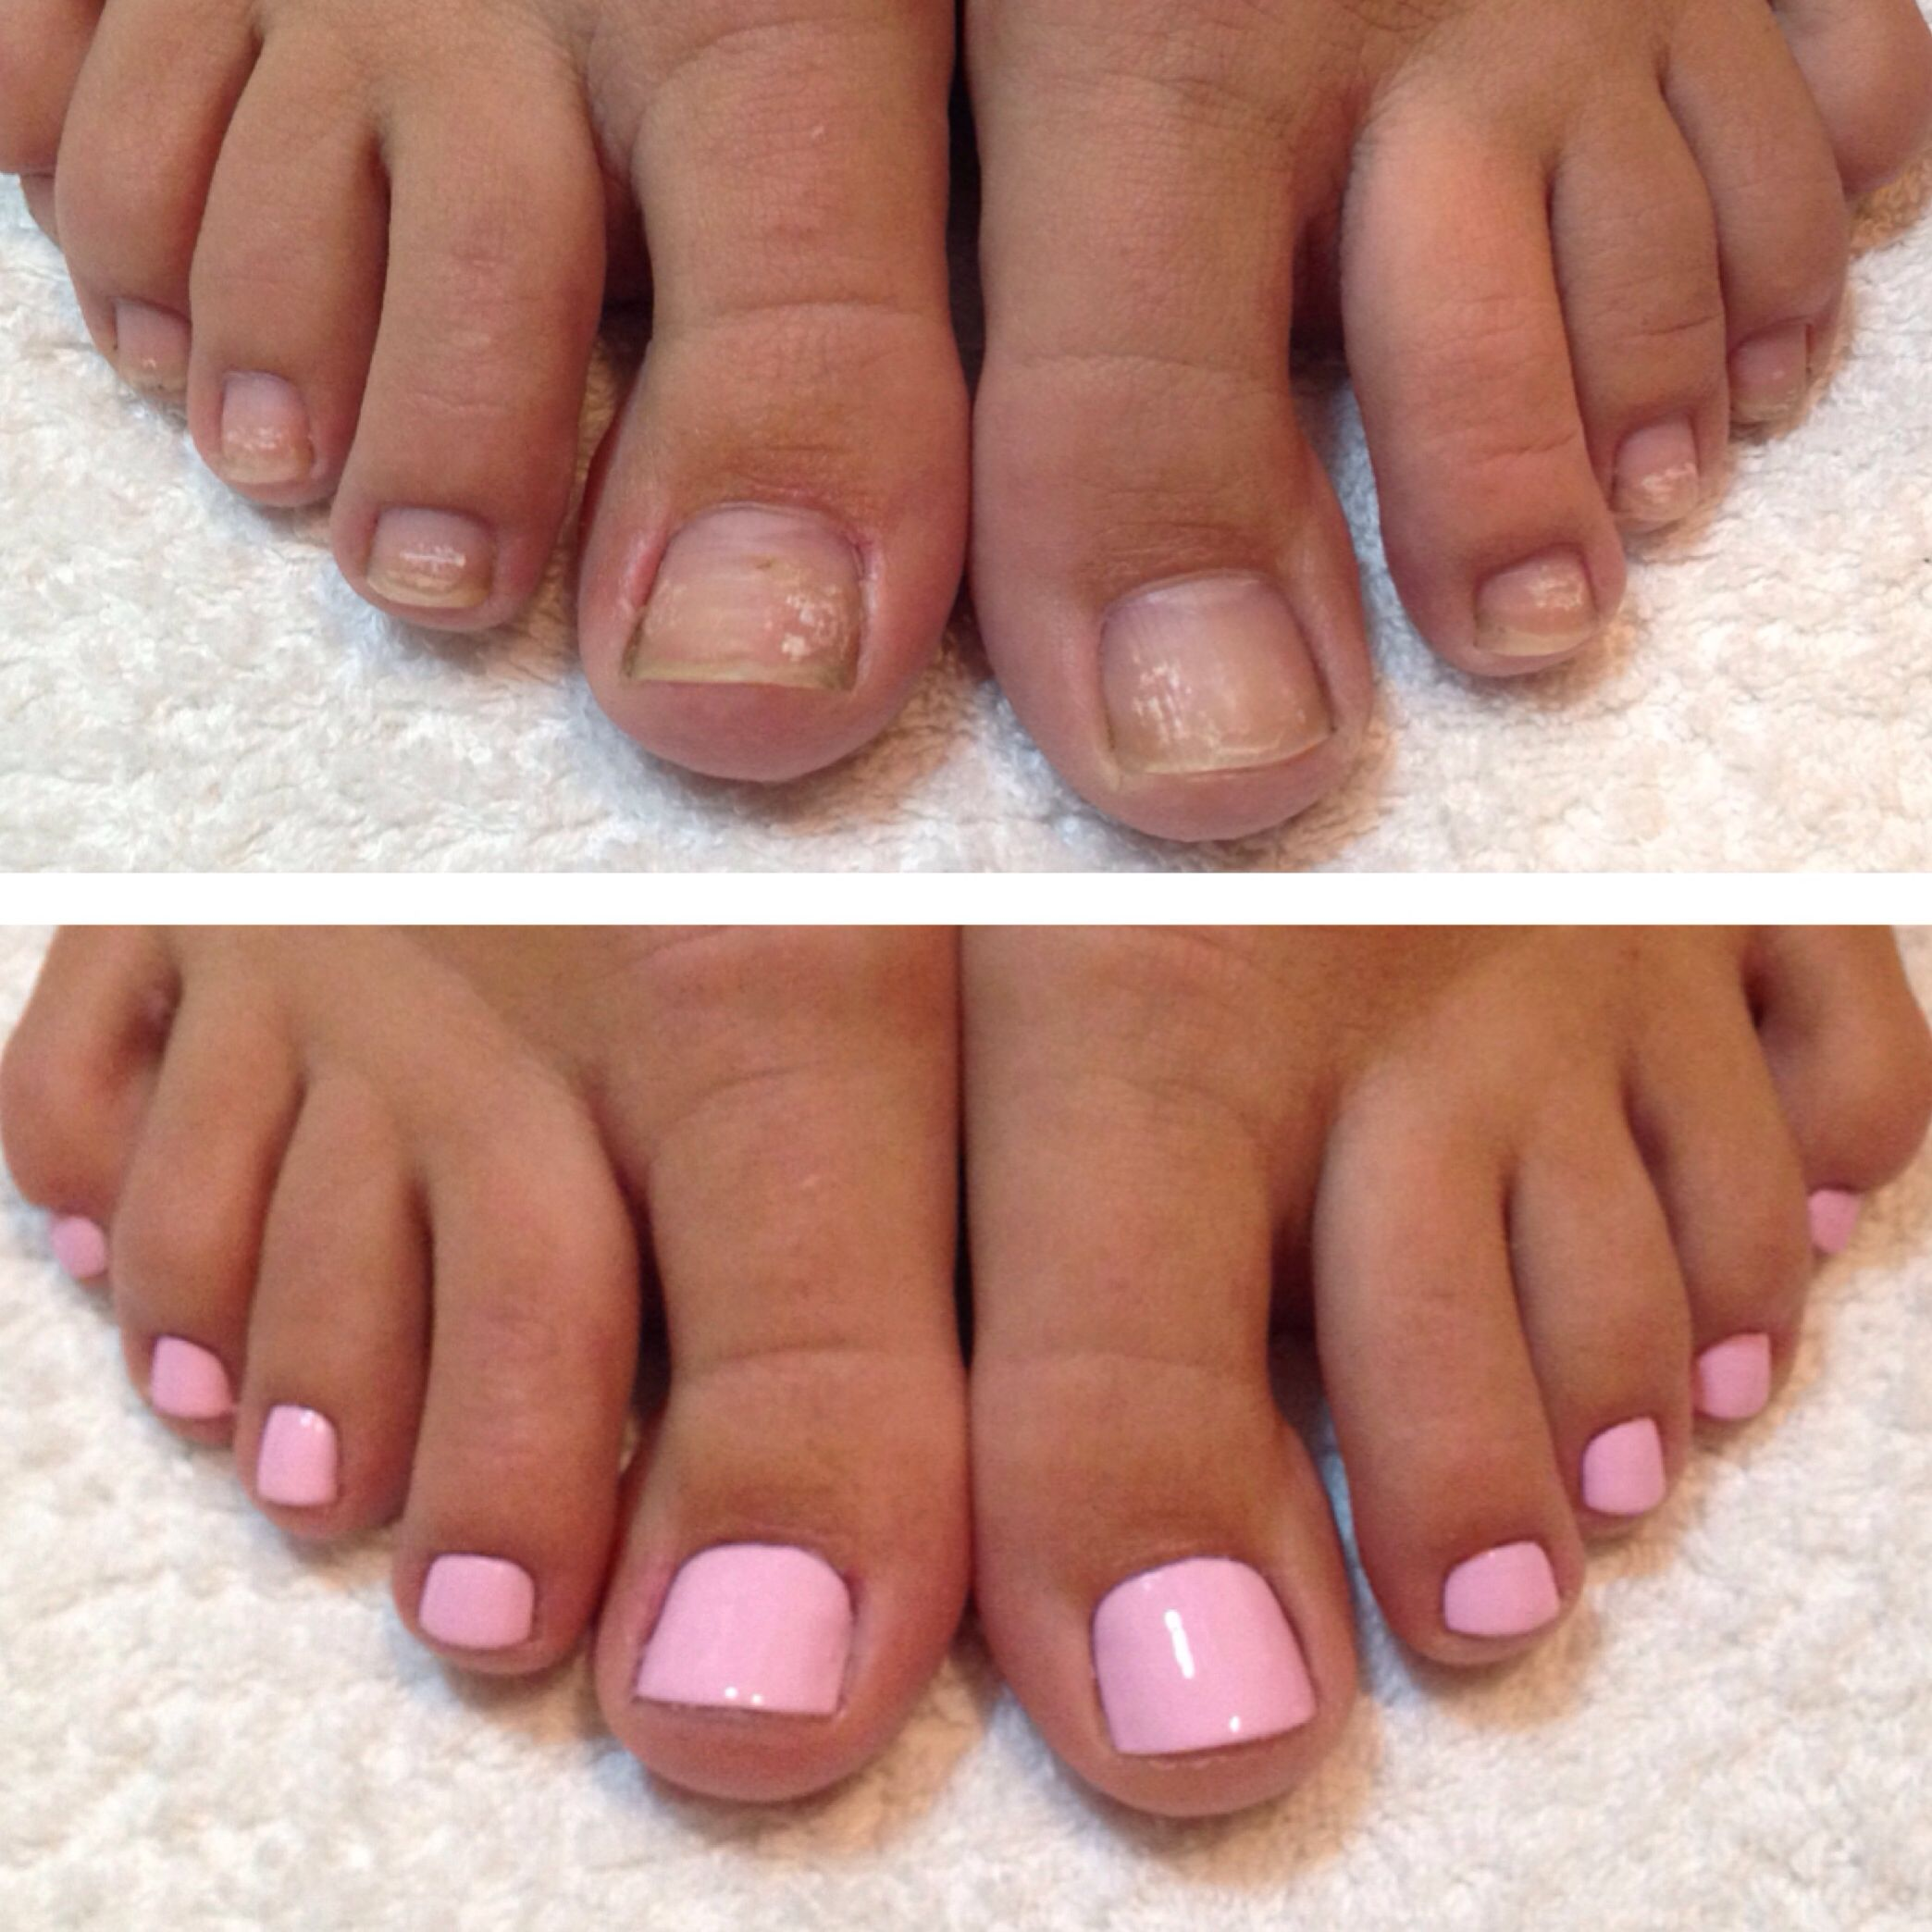 Before And After Pedicure Www Facebook Rachaelsimmshairmakeupandbeauty